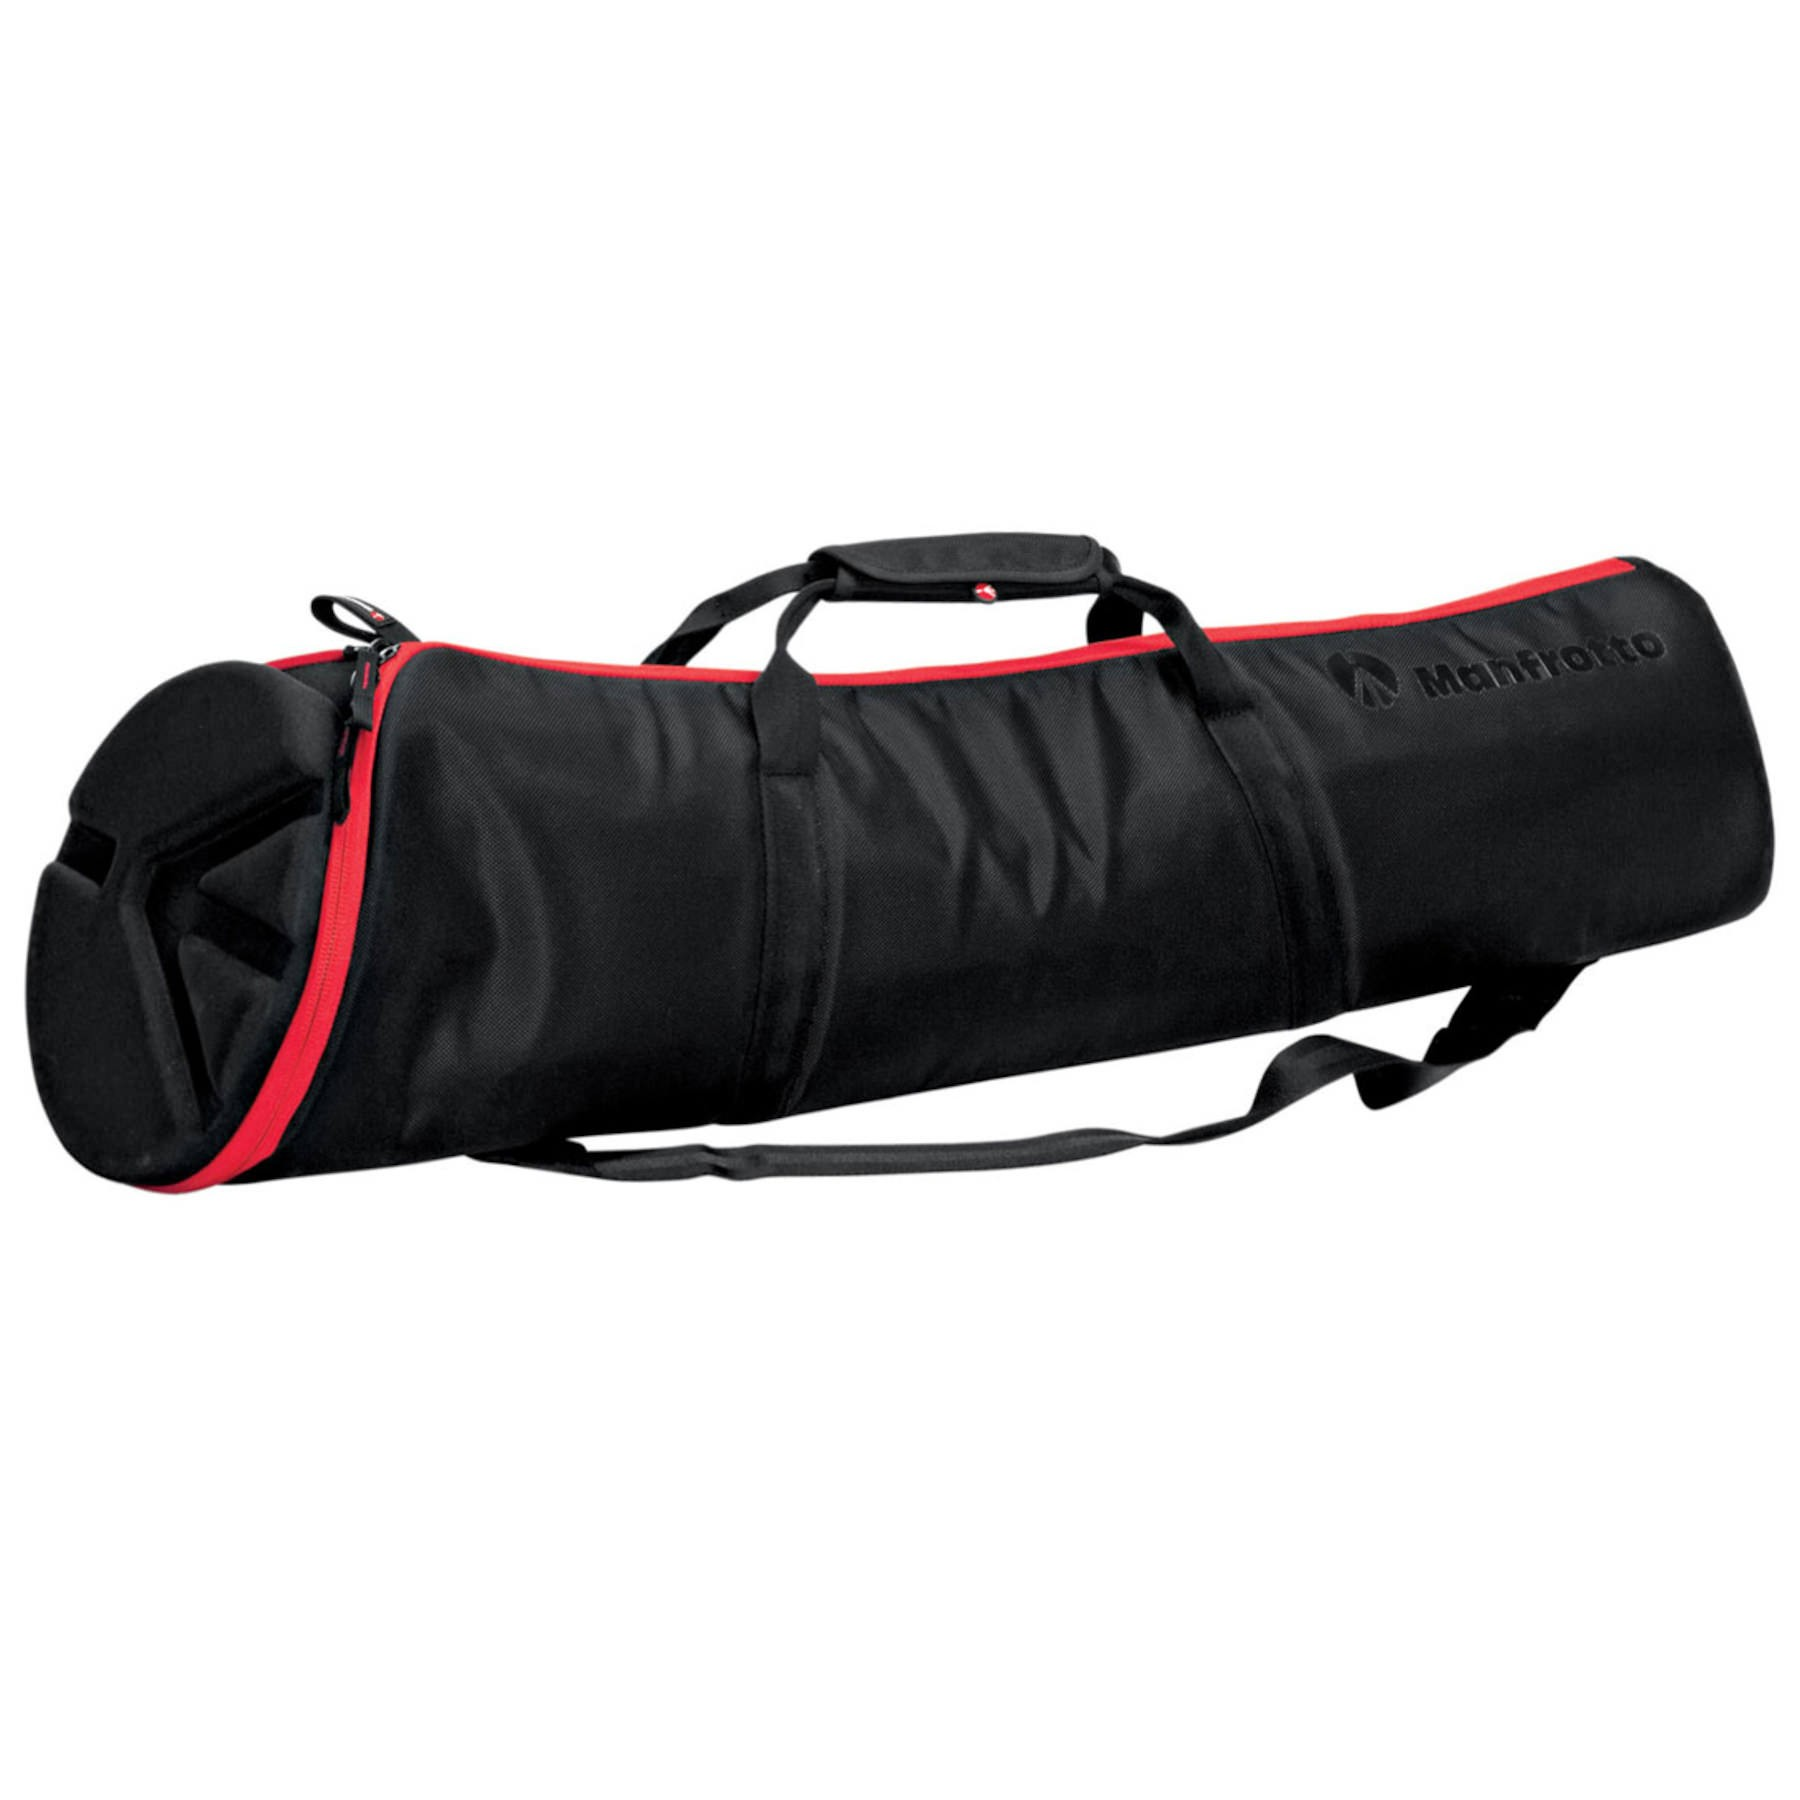 HD Padded Tripod Bag 100 cm